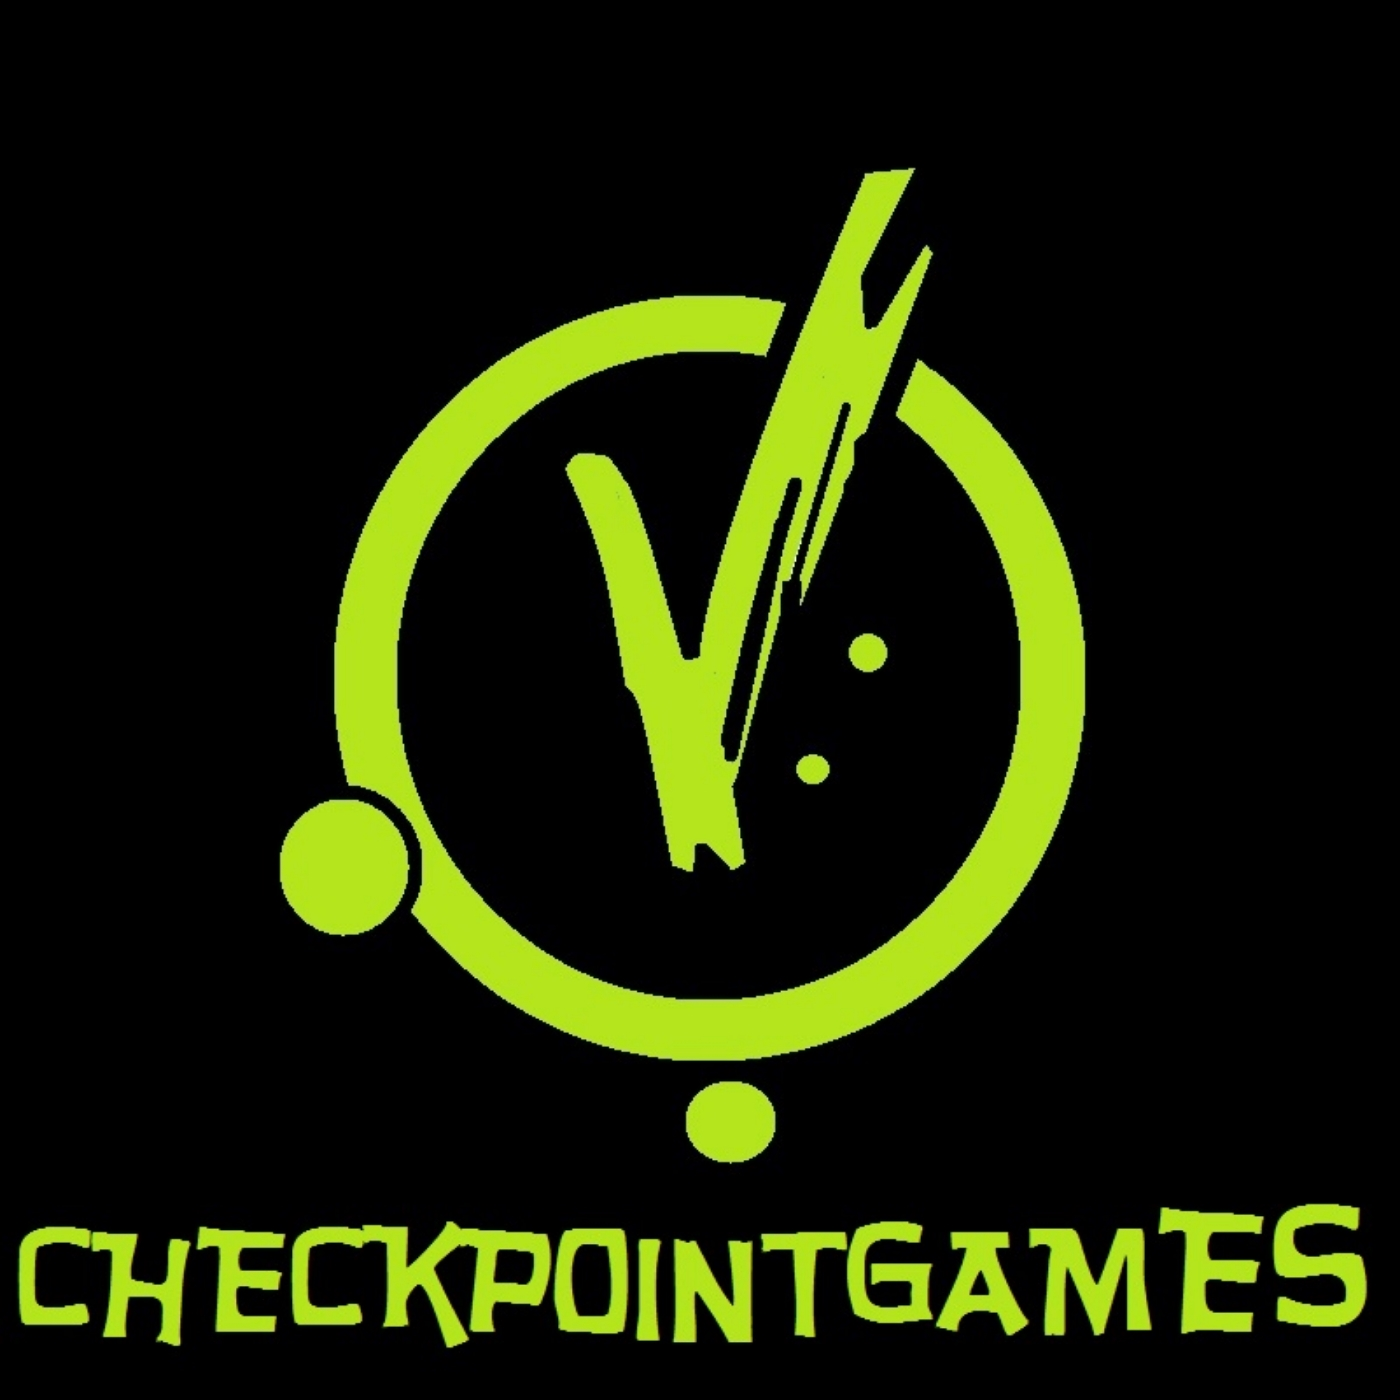 Checkpoint Reached - Checkpoint Games